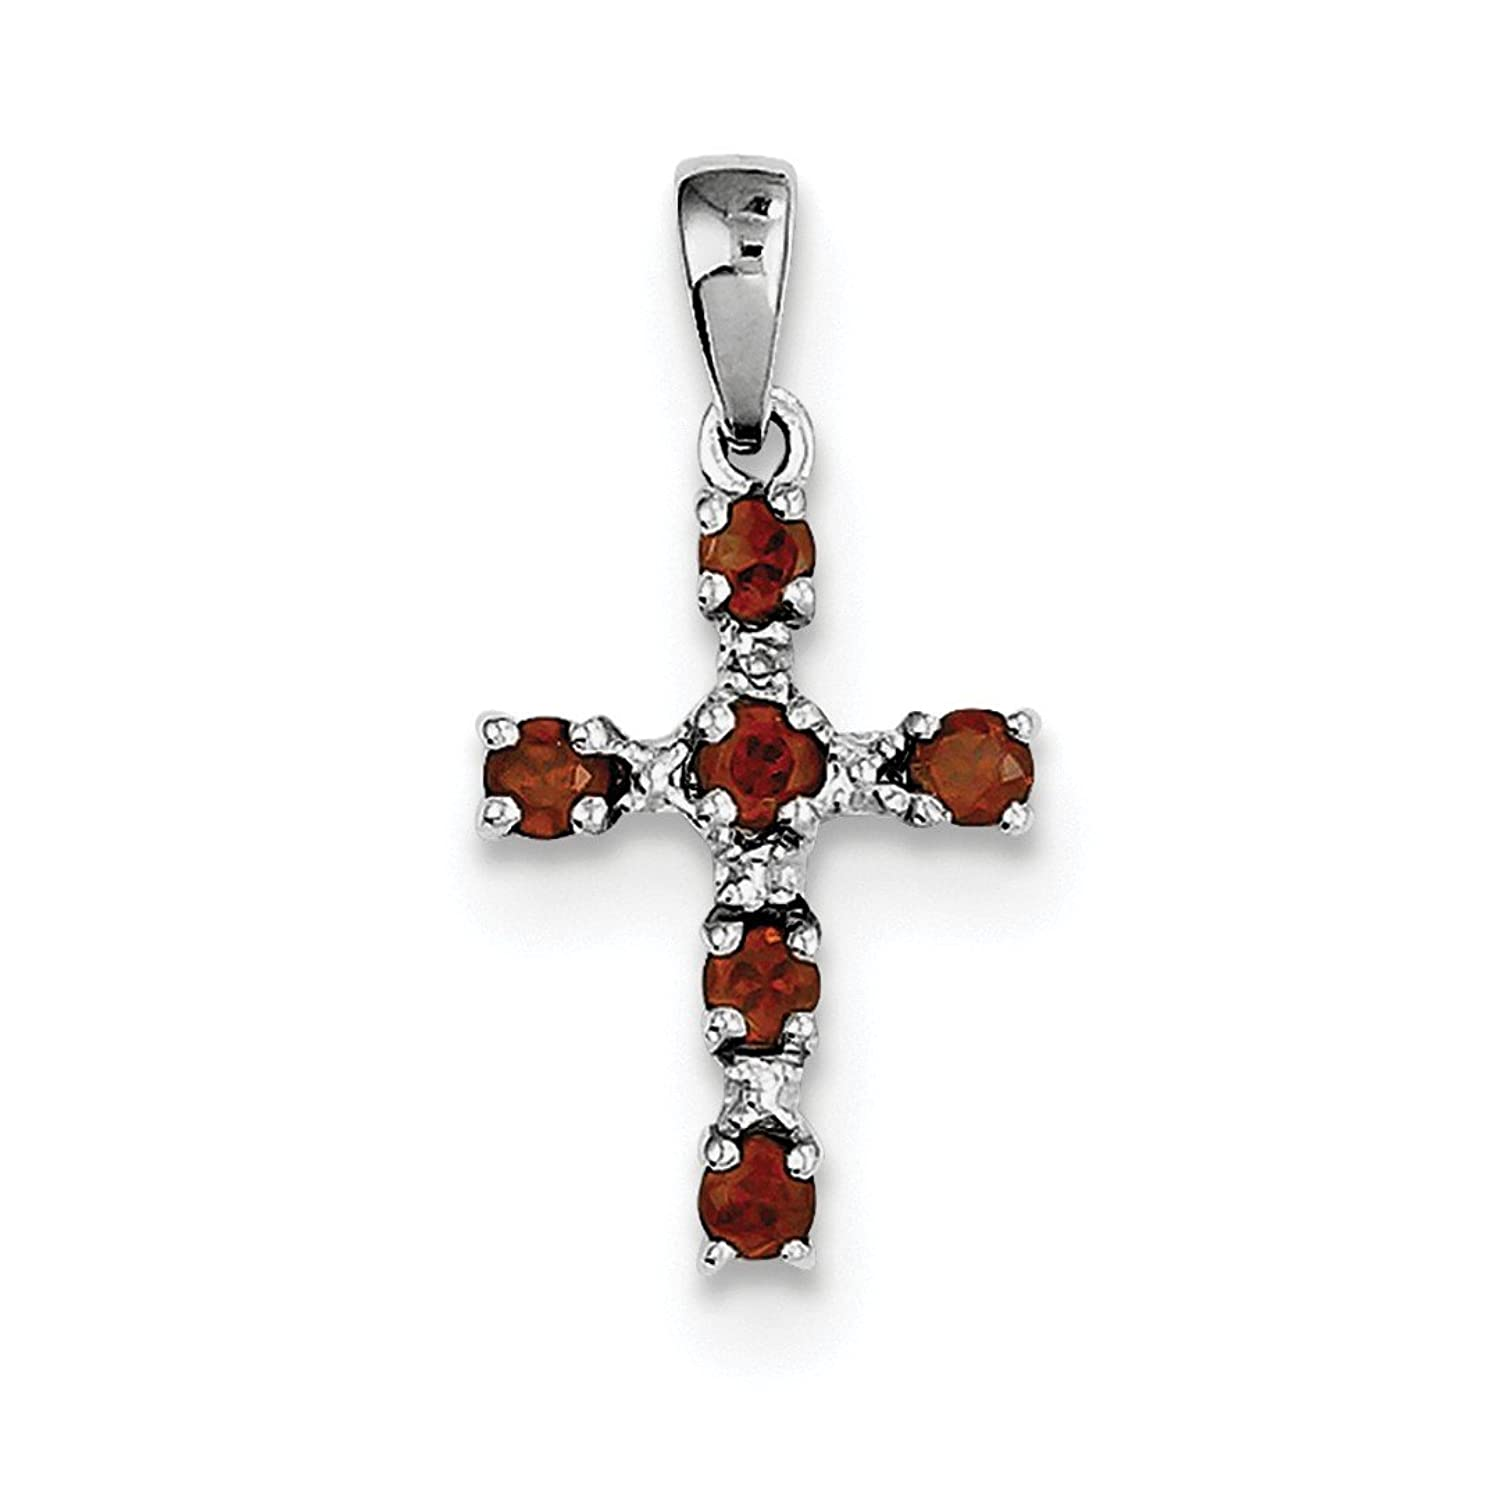 ICE CARATS 925 Sterling Silver Red Garnet Diamond Cross Religious Pendant Charm Necklace Gemstone Fine Jewelry Ideal Mothers Day Gifts For Mom Women Gift Set From Heart